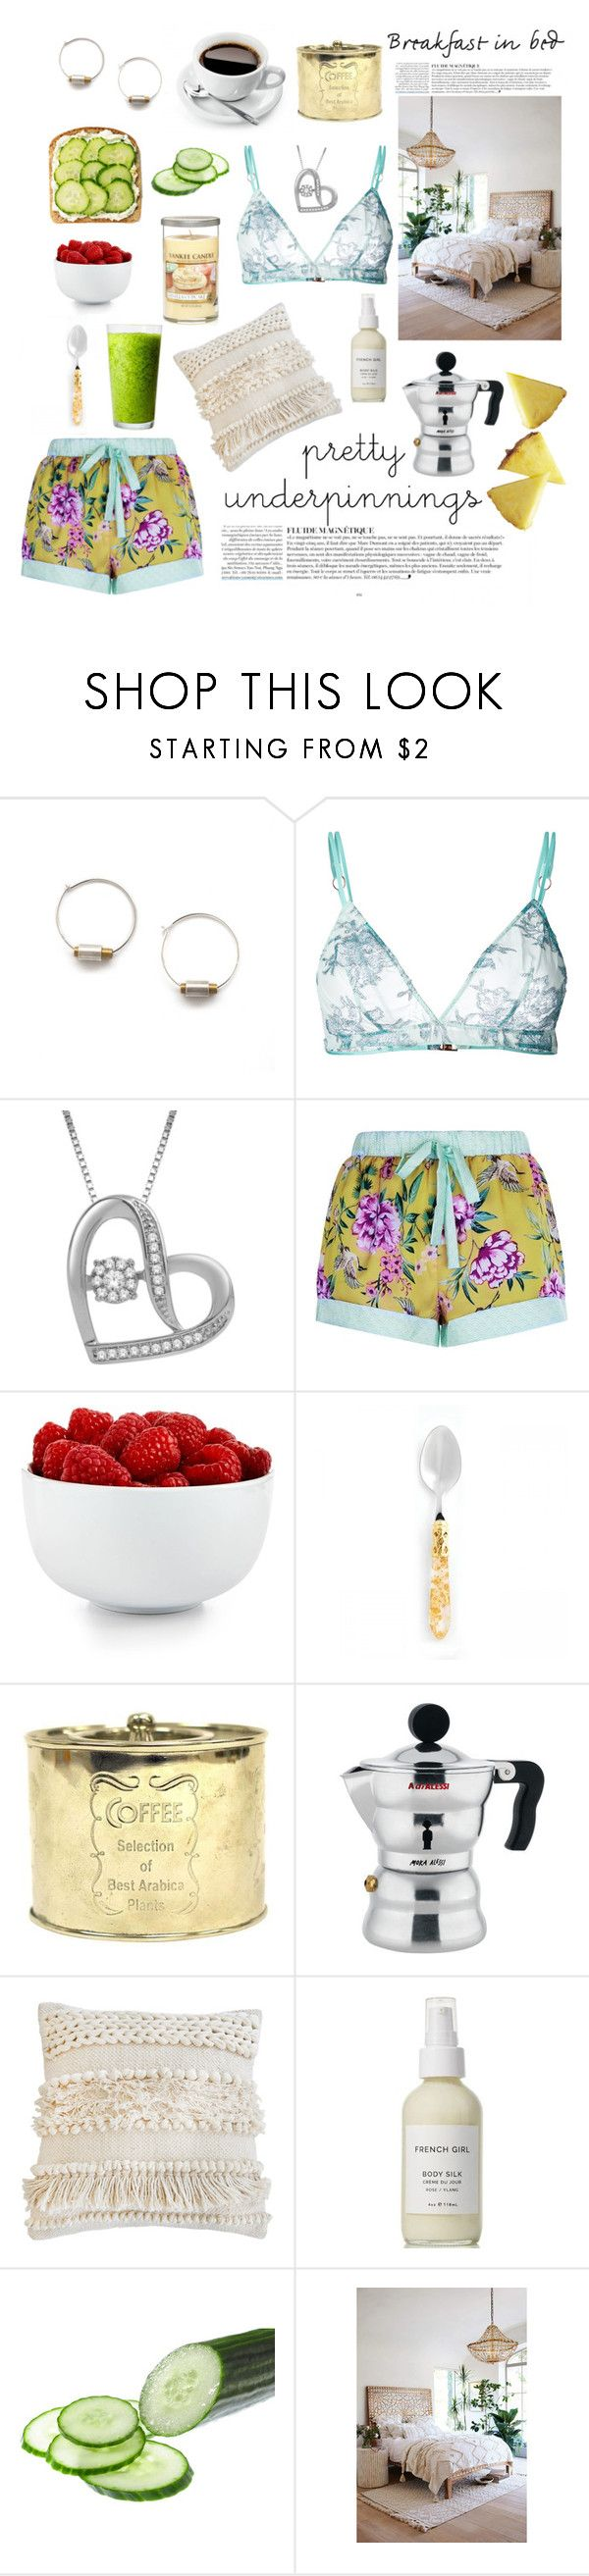 """Breakfast in bed"" by linmari ❤ liked on Polyvore featuring Anja, Yes Master, The Cellar, Alessi, Pom Pom at Home, French Girl, Anthropologie and Yankee Candle"